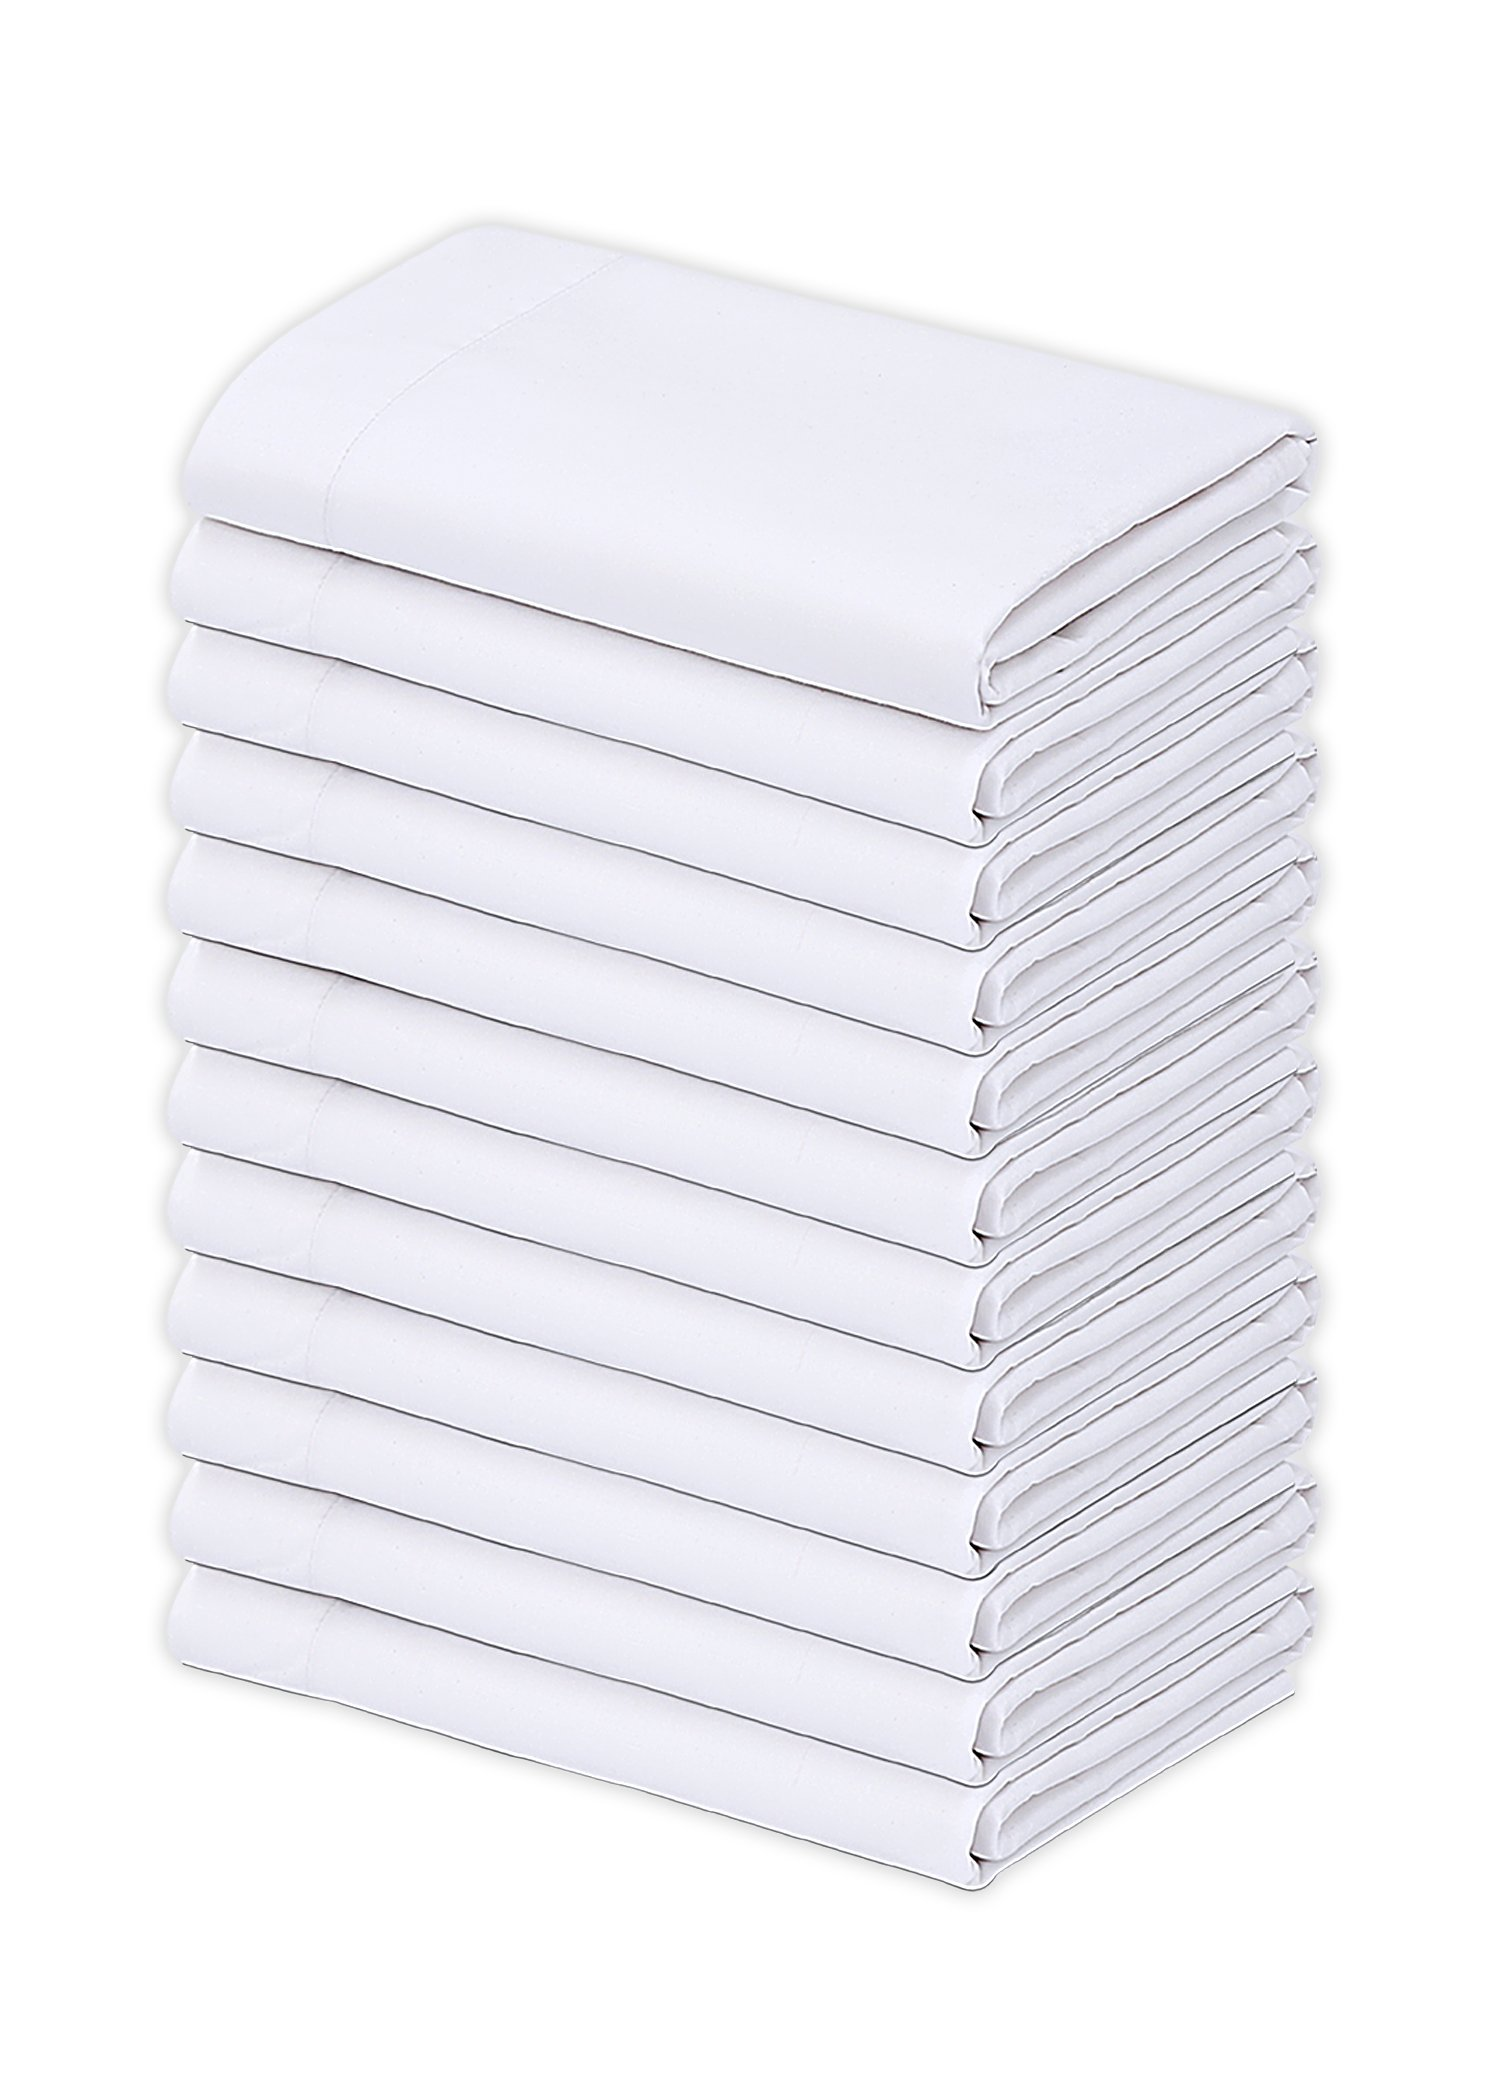 Gold Textiles Bulk Pack of 12 Polycotton king size Pillowcases, White T200-21''x40'' (Fits 20''x36'' pillow) Multipurpose- Ideal for use in Hotels,Hospitals, School Projects and More (12, King)